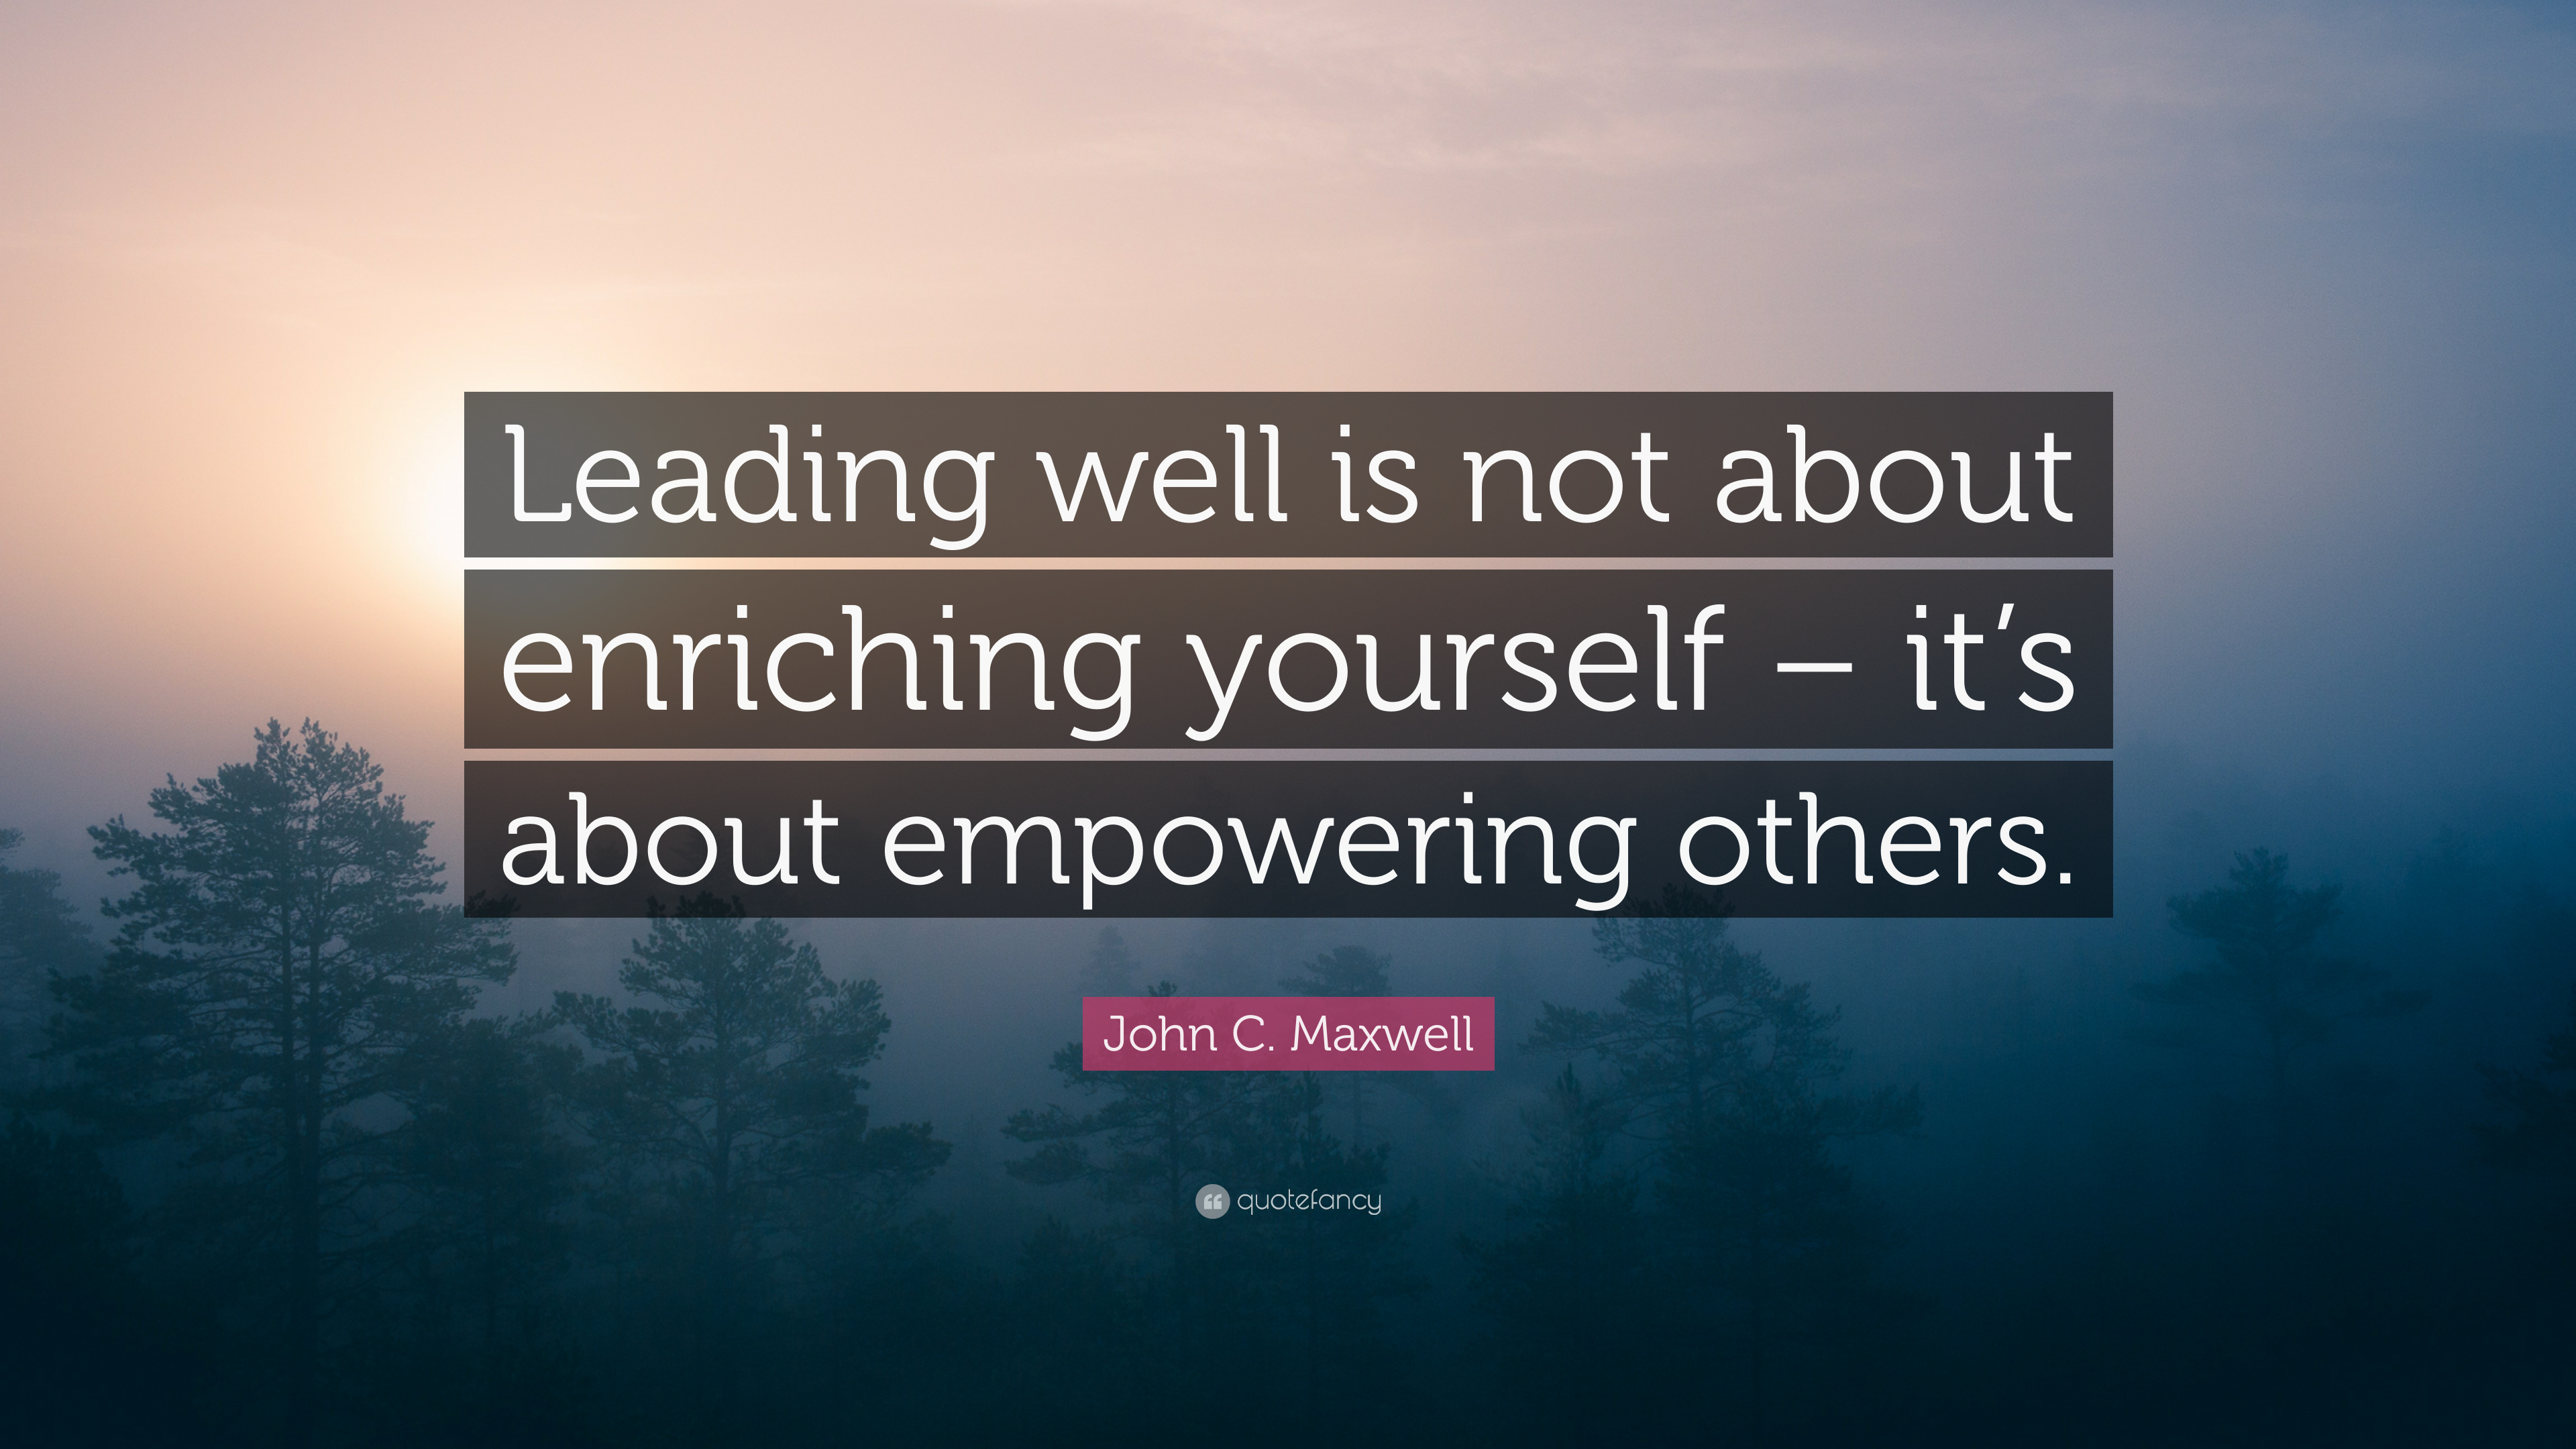 John C Maxwell Quote Leading Well Is Not About Enriching Yourself